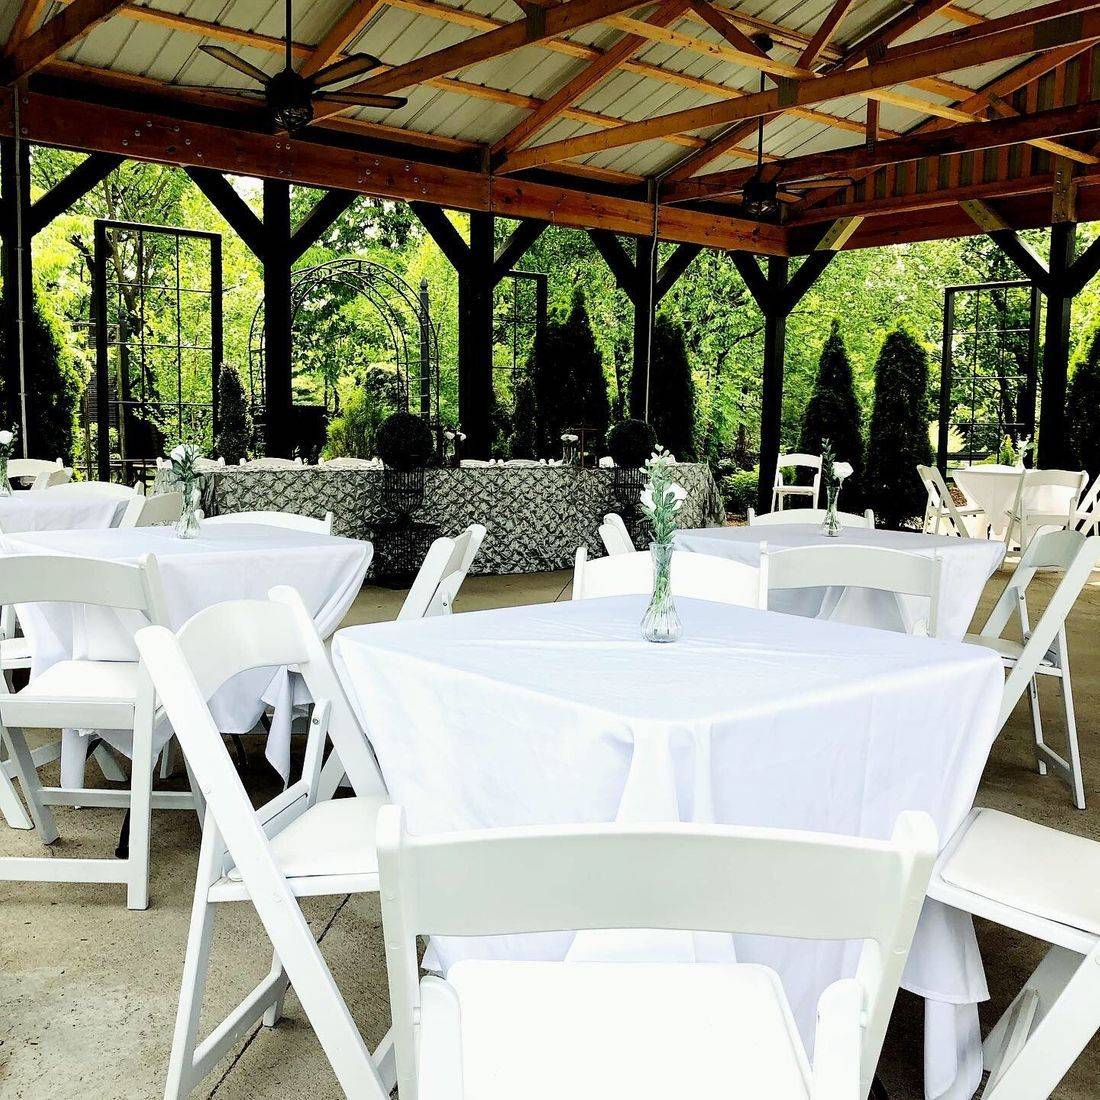 St. Louis wedding.  Intimate Wedding Cottage.  Intimate Venue.  Elopement Wedding.  Intimate Wedding.  OFallon, MO